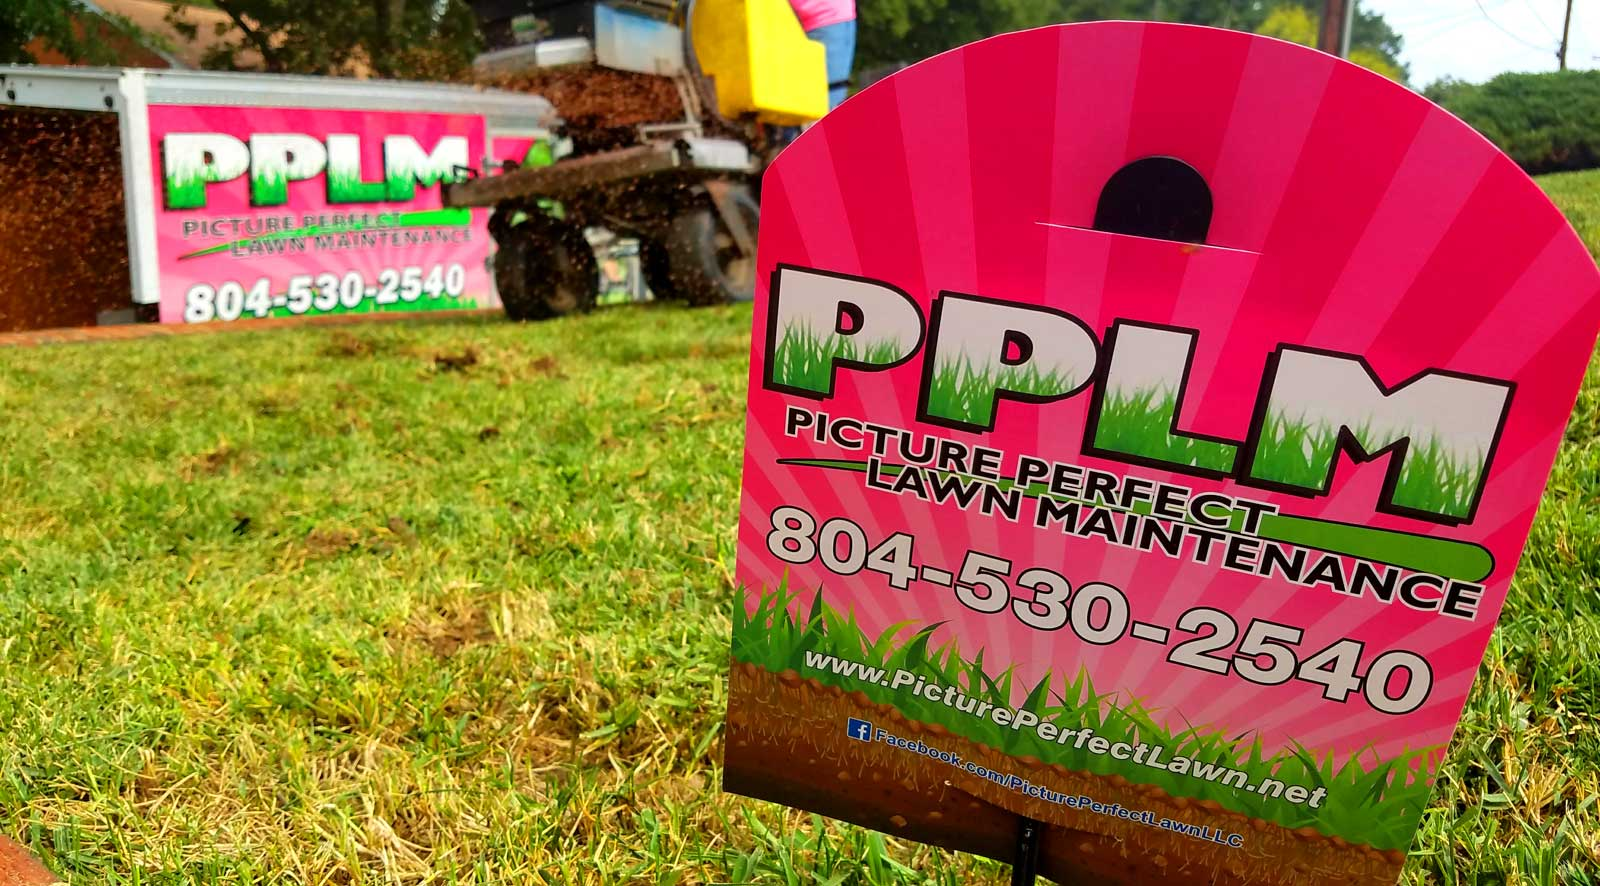 Picture Perfect Lawn Maintenance Chesterfield VA (804) 530-2540